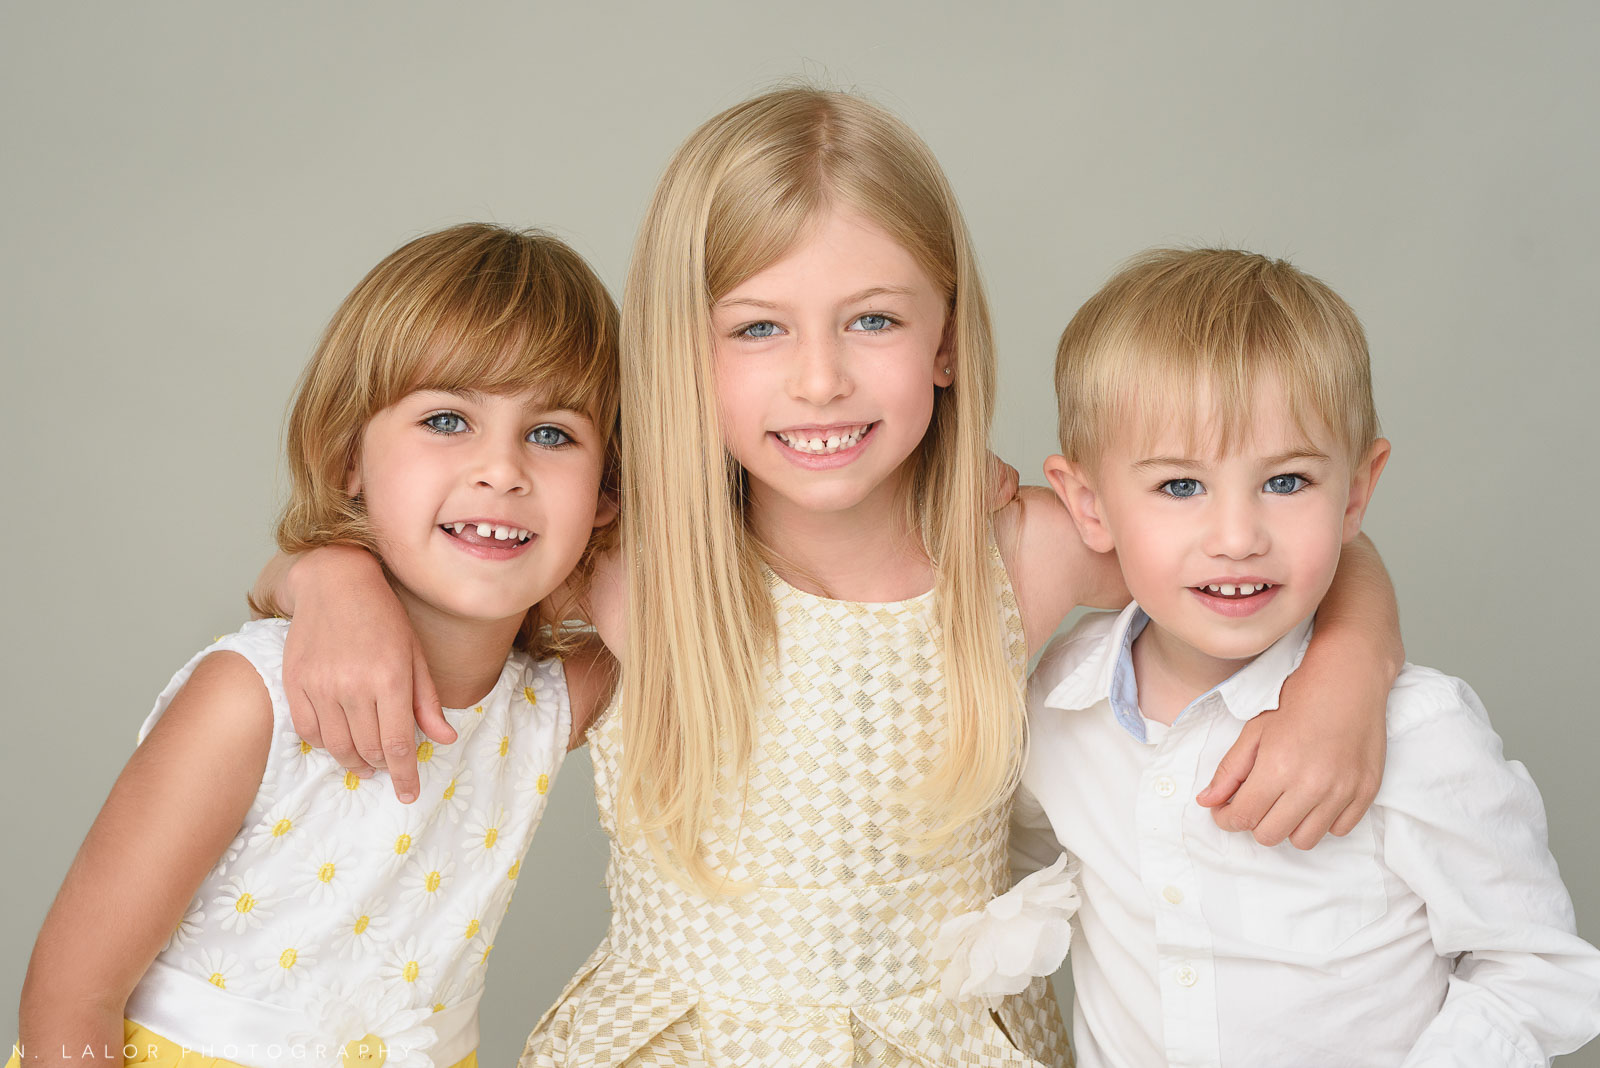 These 3 kids did NOT all have perfect smiles at the same time.. this one is a combination of two images.